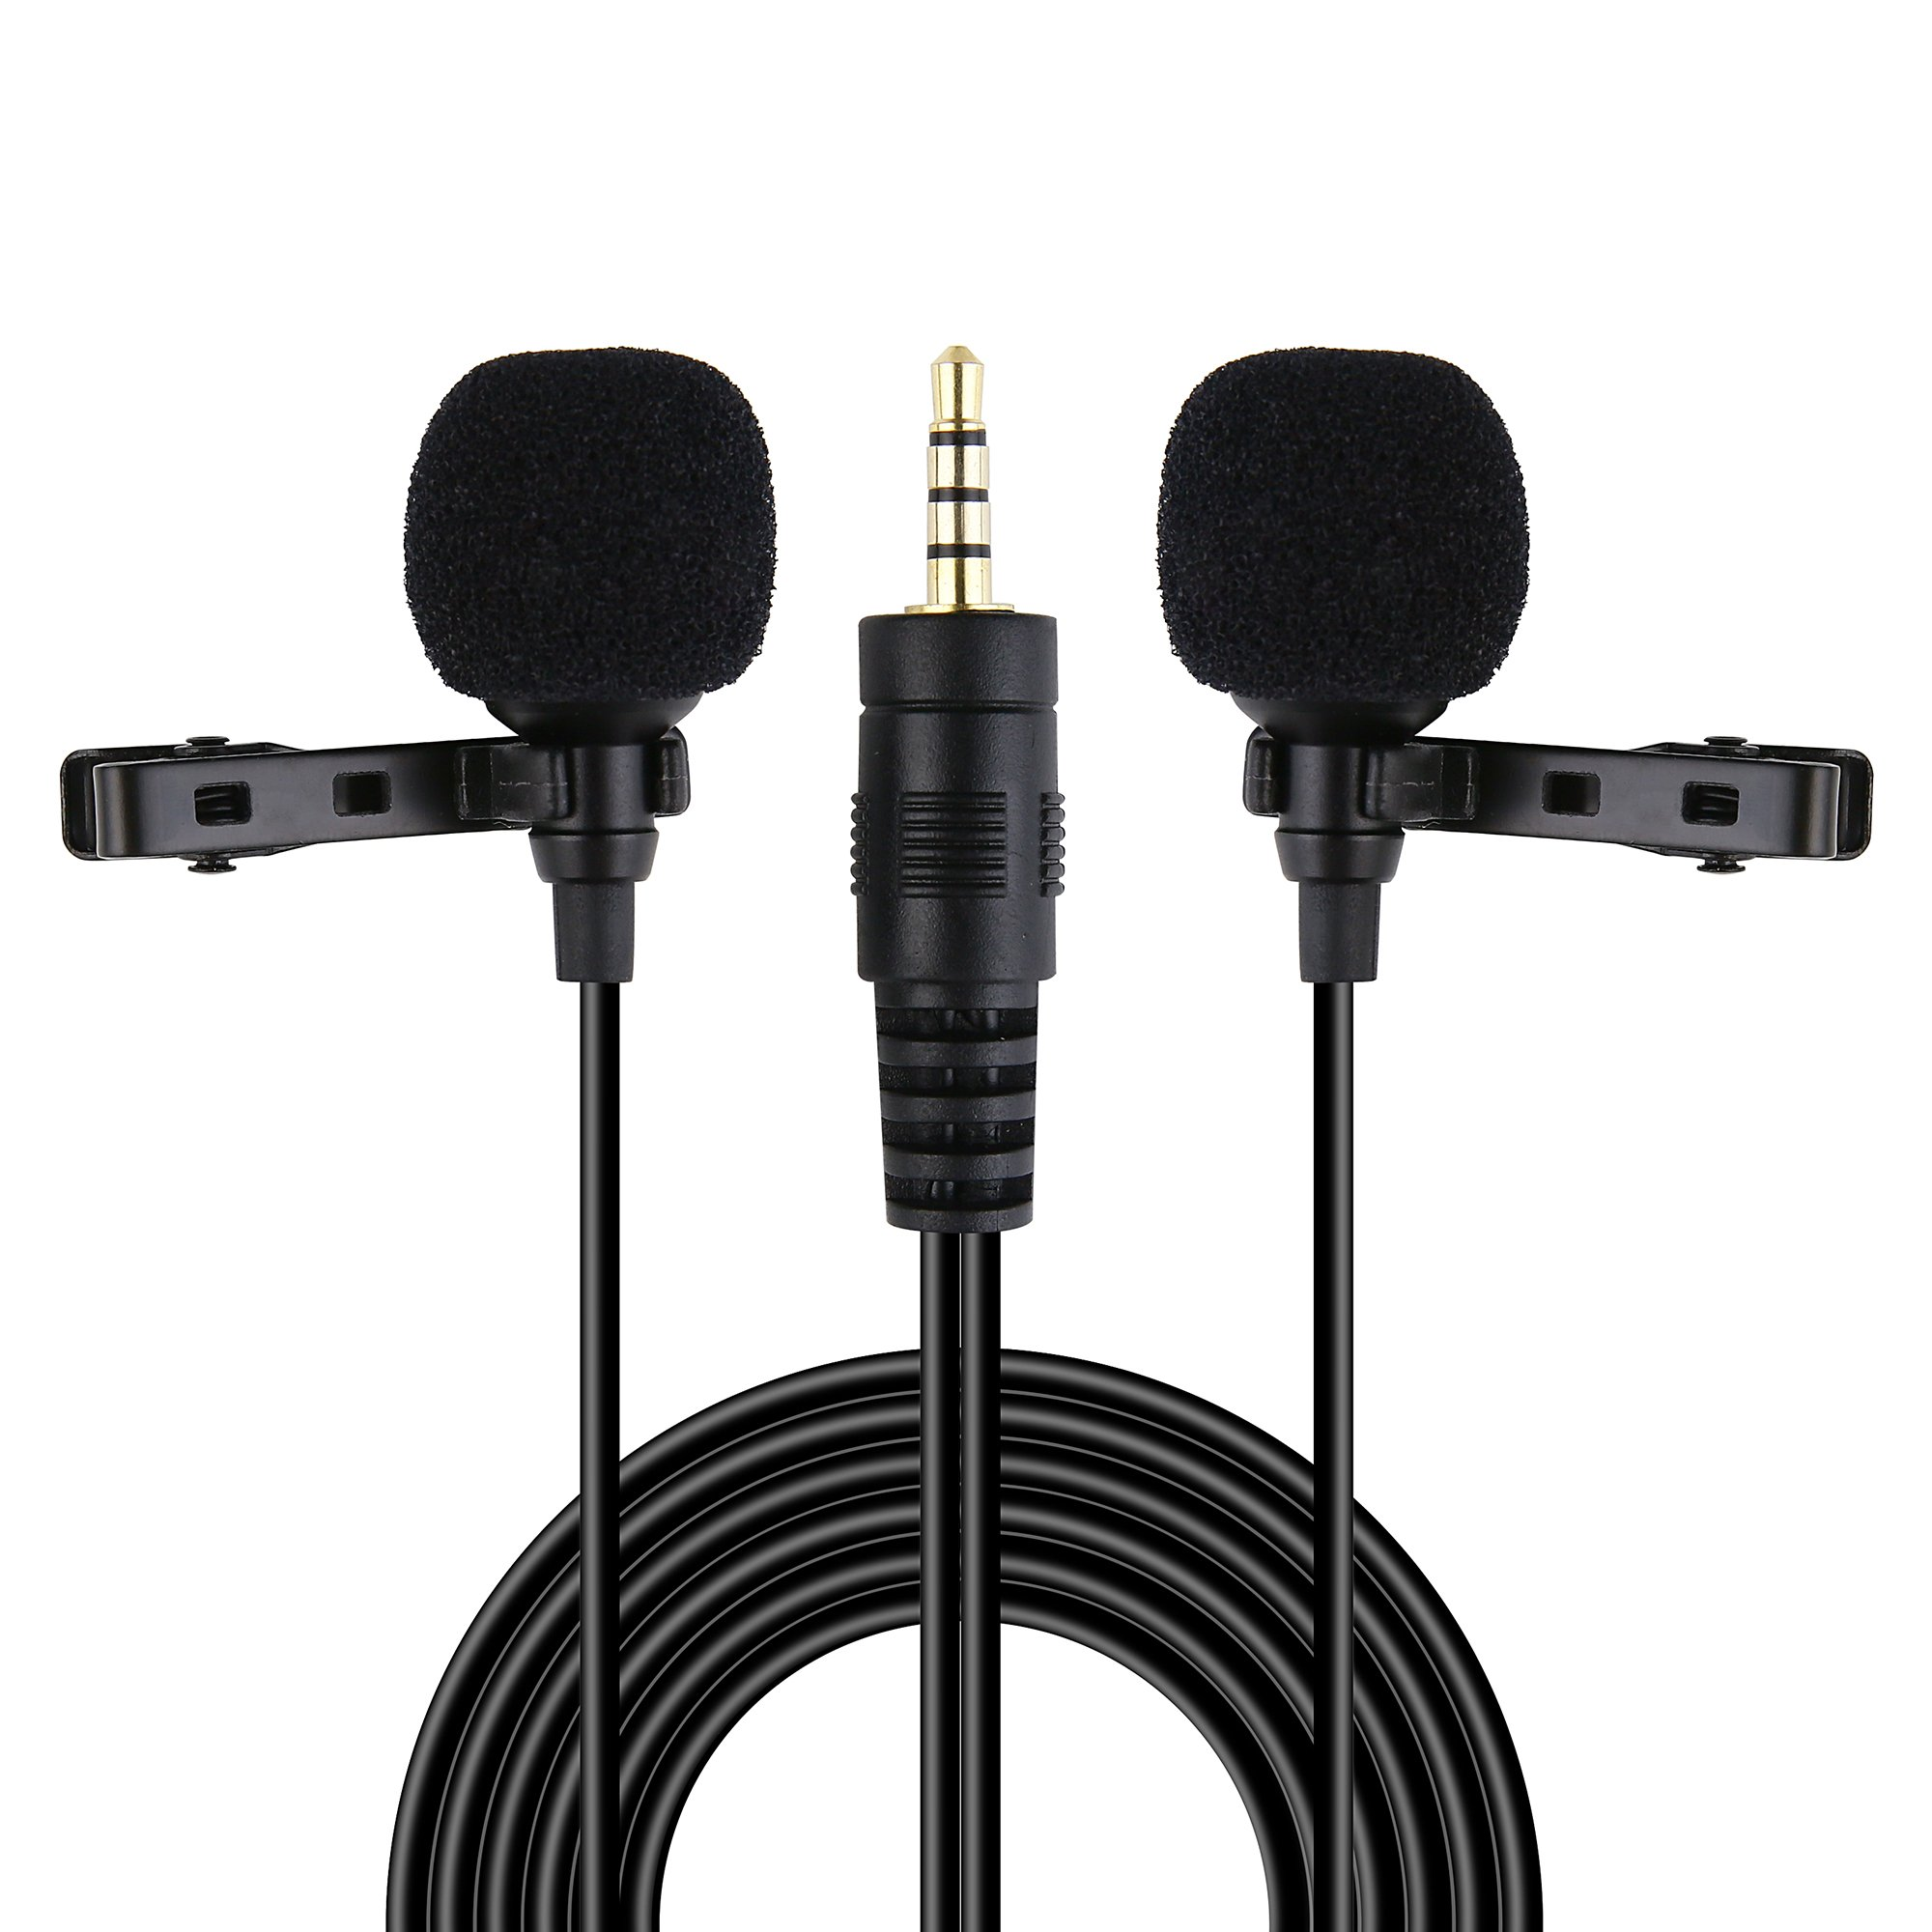 Riqiorod 20FT Dual Lavalier Microphone, Lapel Interview Clip-on Mini Omnidirectional Condenser Mic with TRRS to TRS Adapter for iPhone Android Smartphones iPad Media Player Xbox One Gaming Laptop,